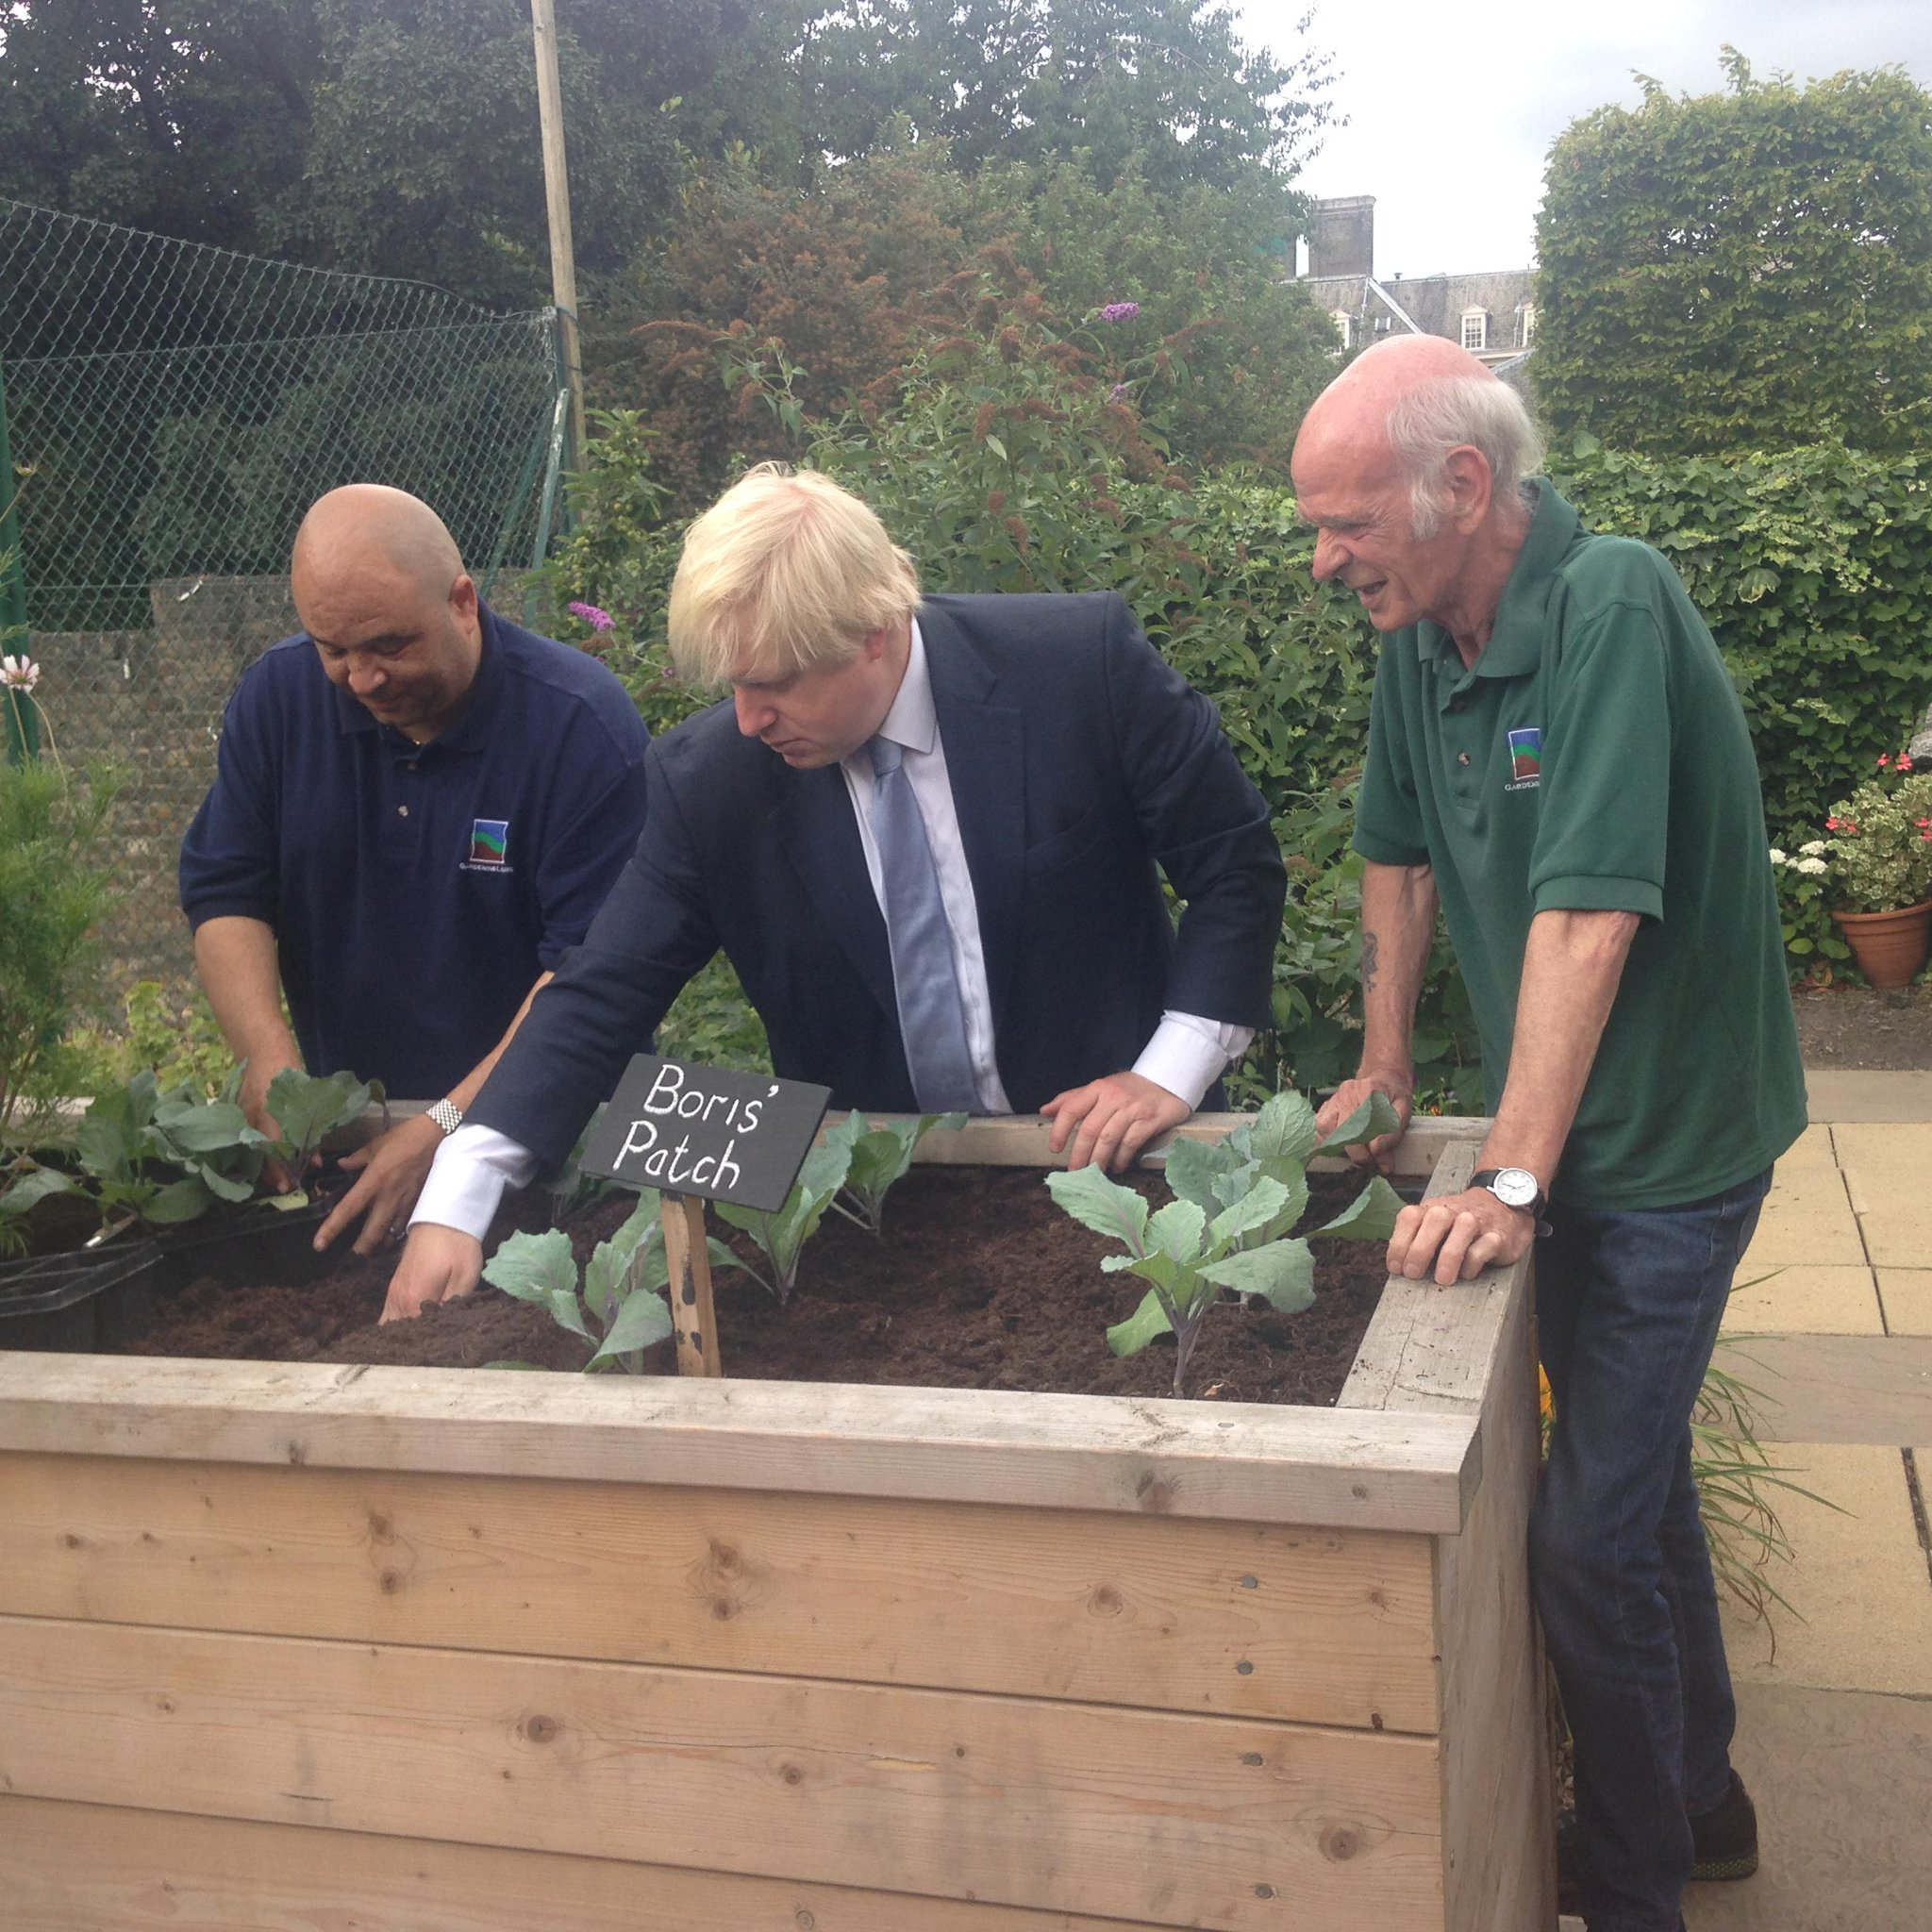 Planted veg and met wonderful veterans whose recoveries are being helped by horticultural therapy @gardening_leave http://t.co/vA0nydzMYZ